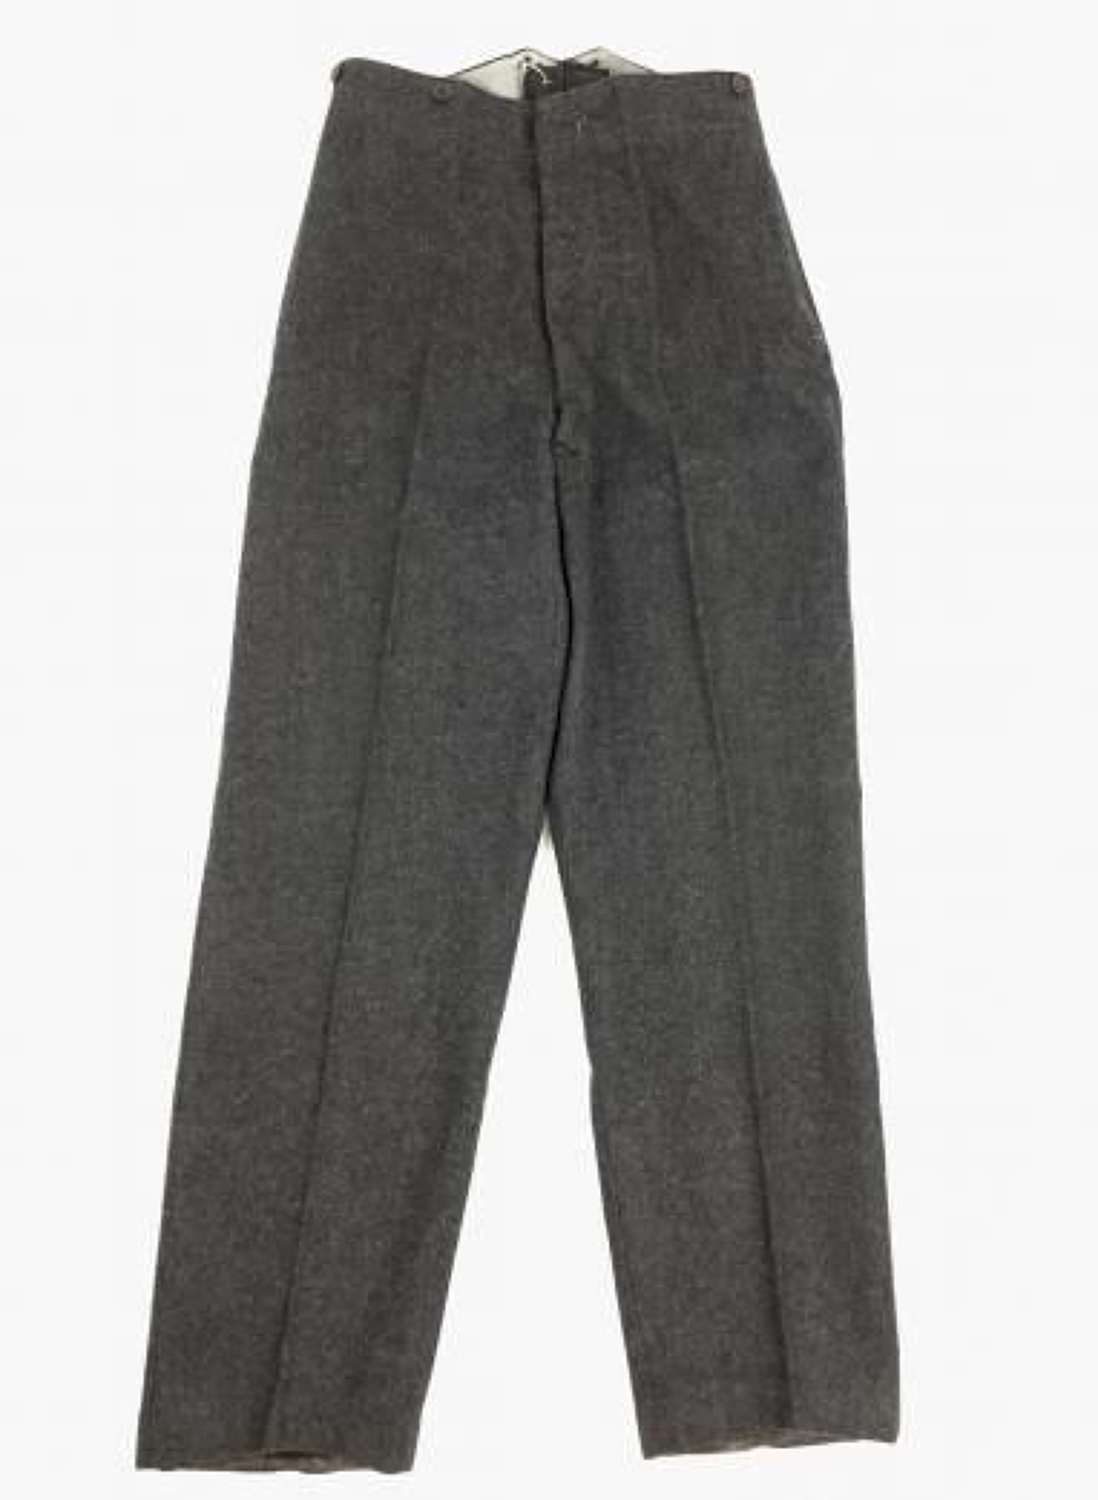 Original WW2 Pattern RAF OA Trousers Dated 1950 - Size 27